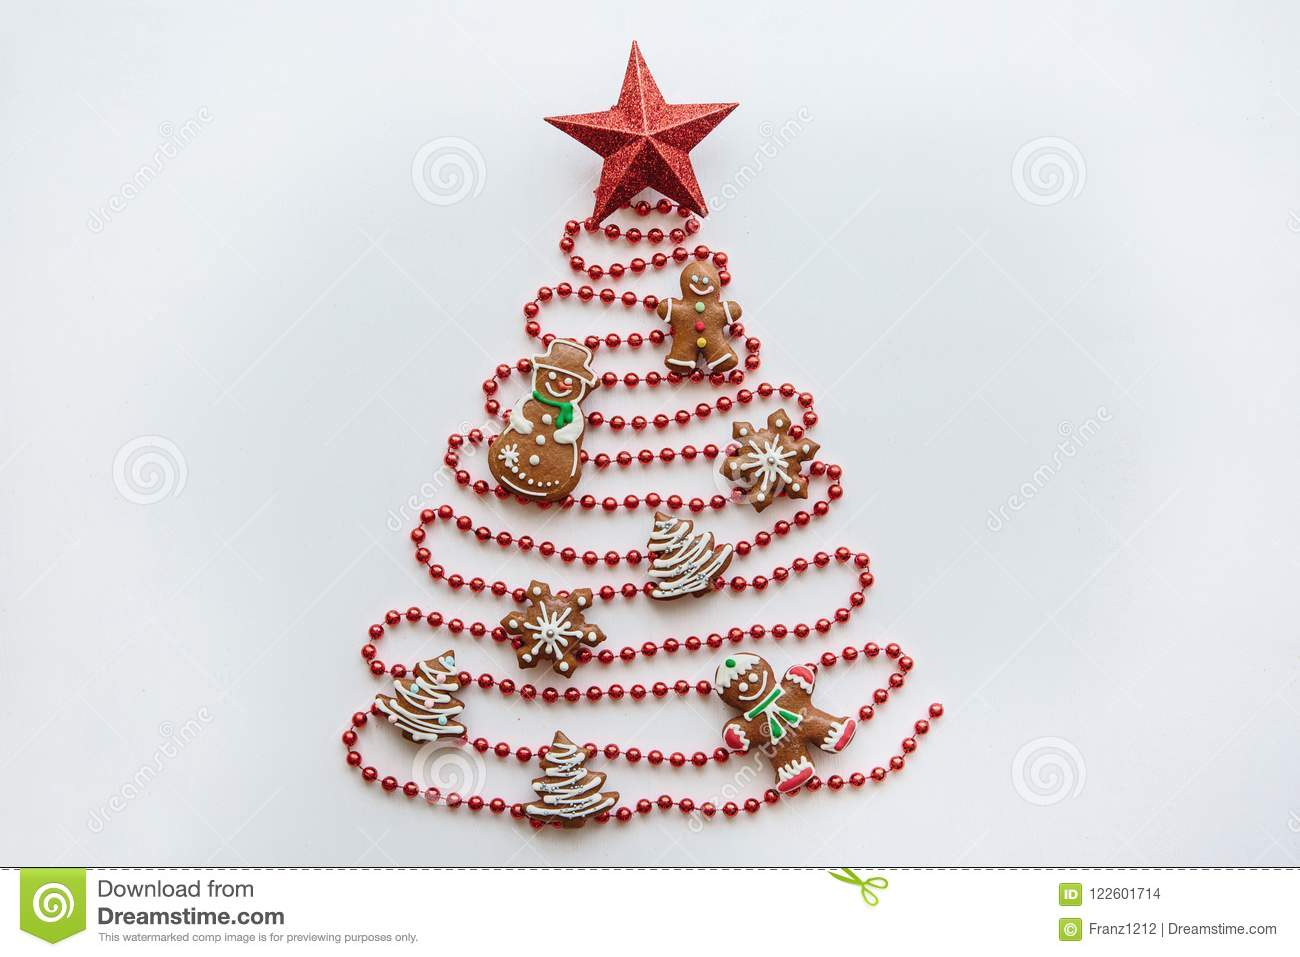 creative idea in minimalistic style for christmas or new year themes a christmas tree made